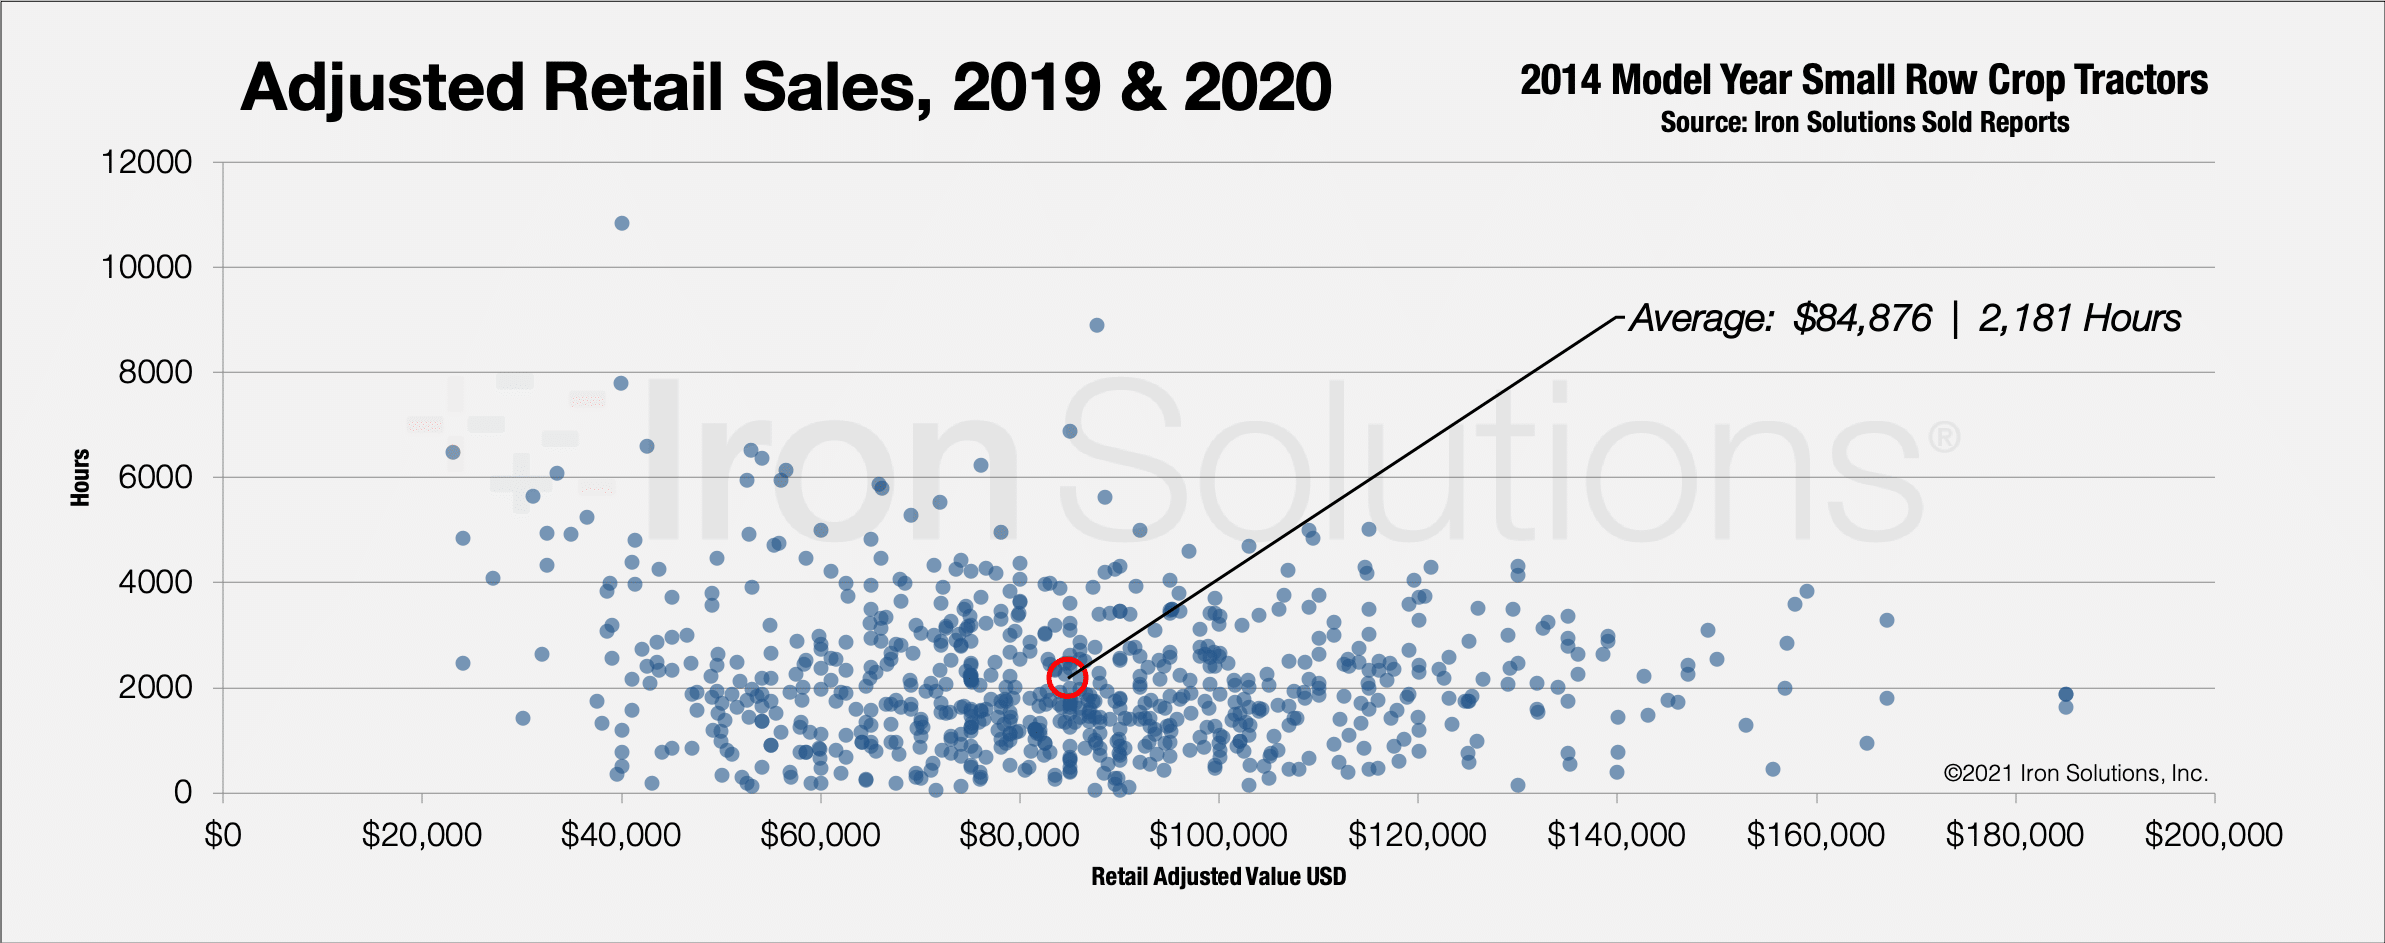 Retail Sales, 2019 & 2020 for 2014 Model Year Small Row Crop Tractors